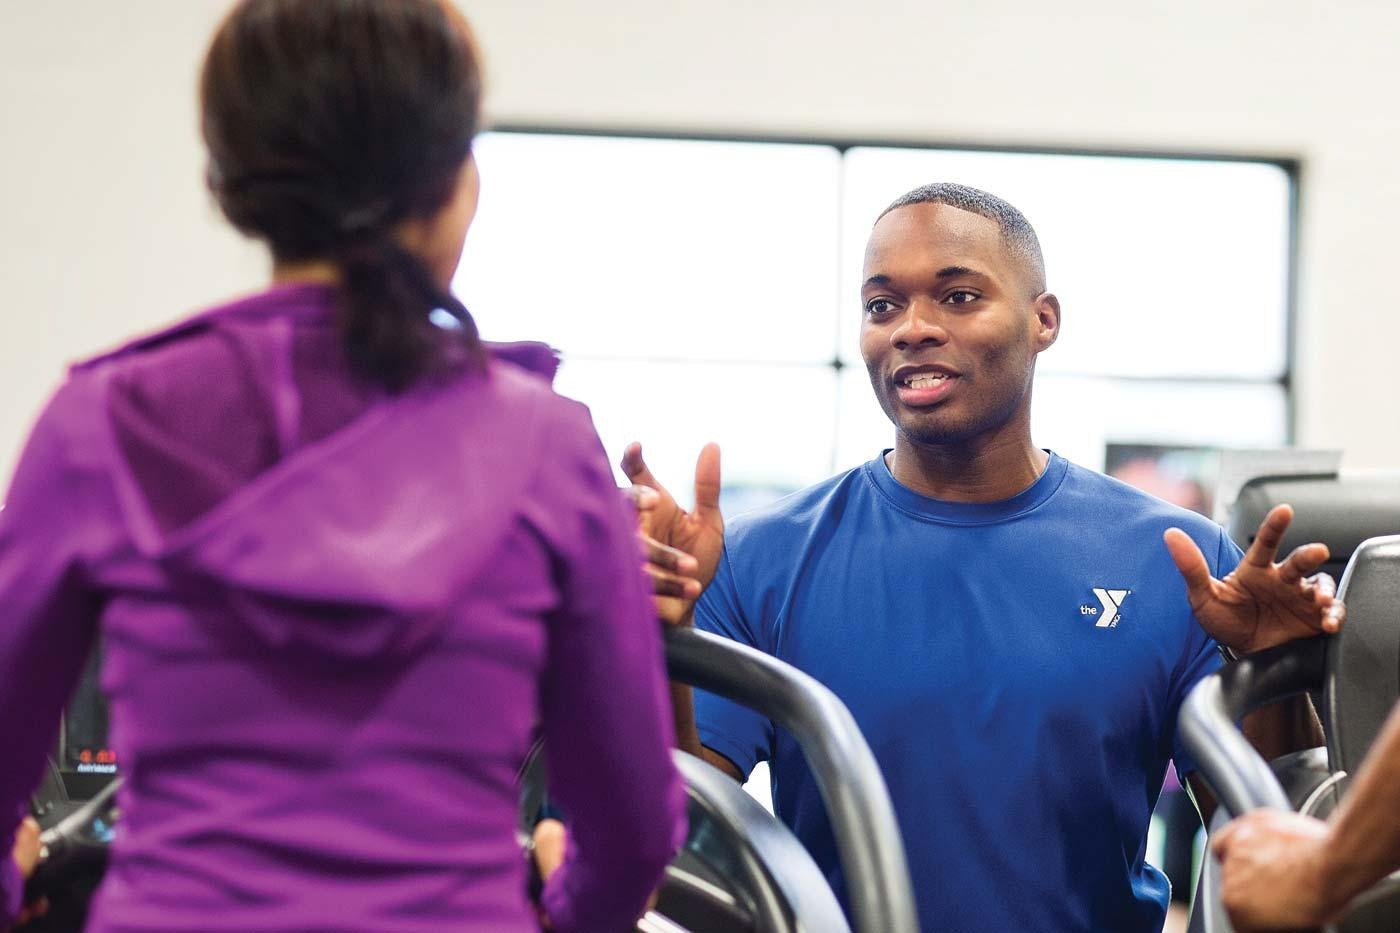 Personal trainer assists member on treadmills